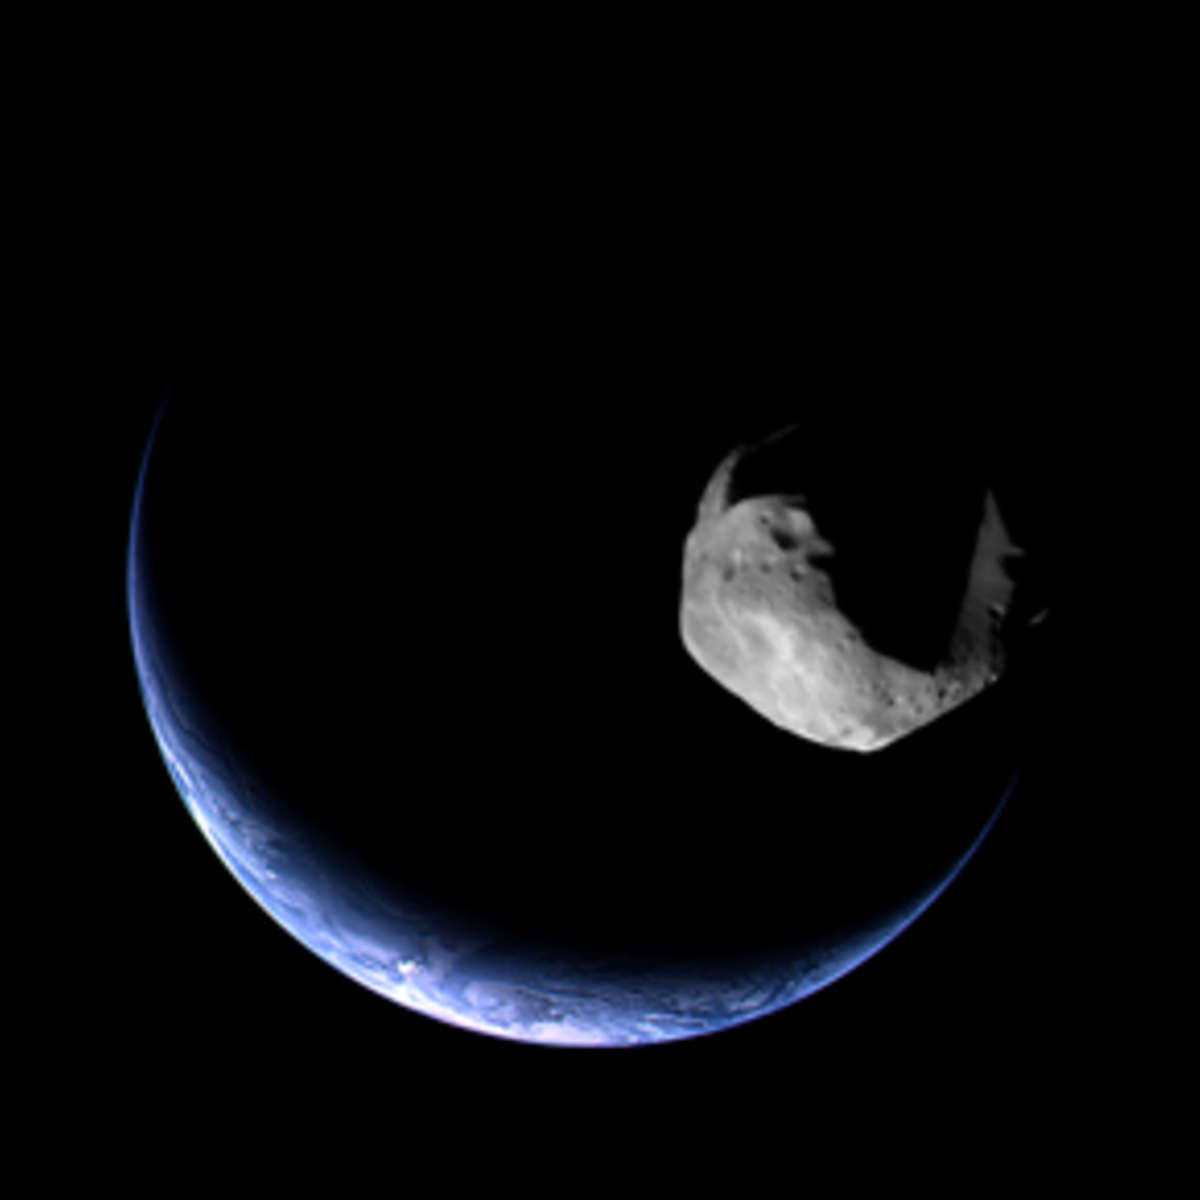 near_earth_asteroid_icon_5.jpg